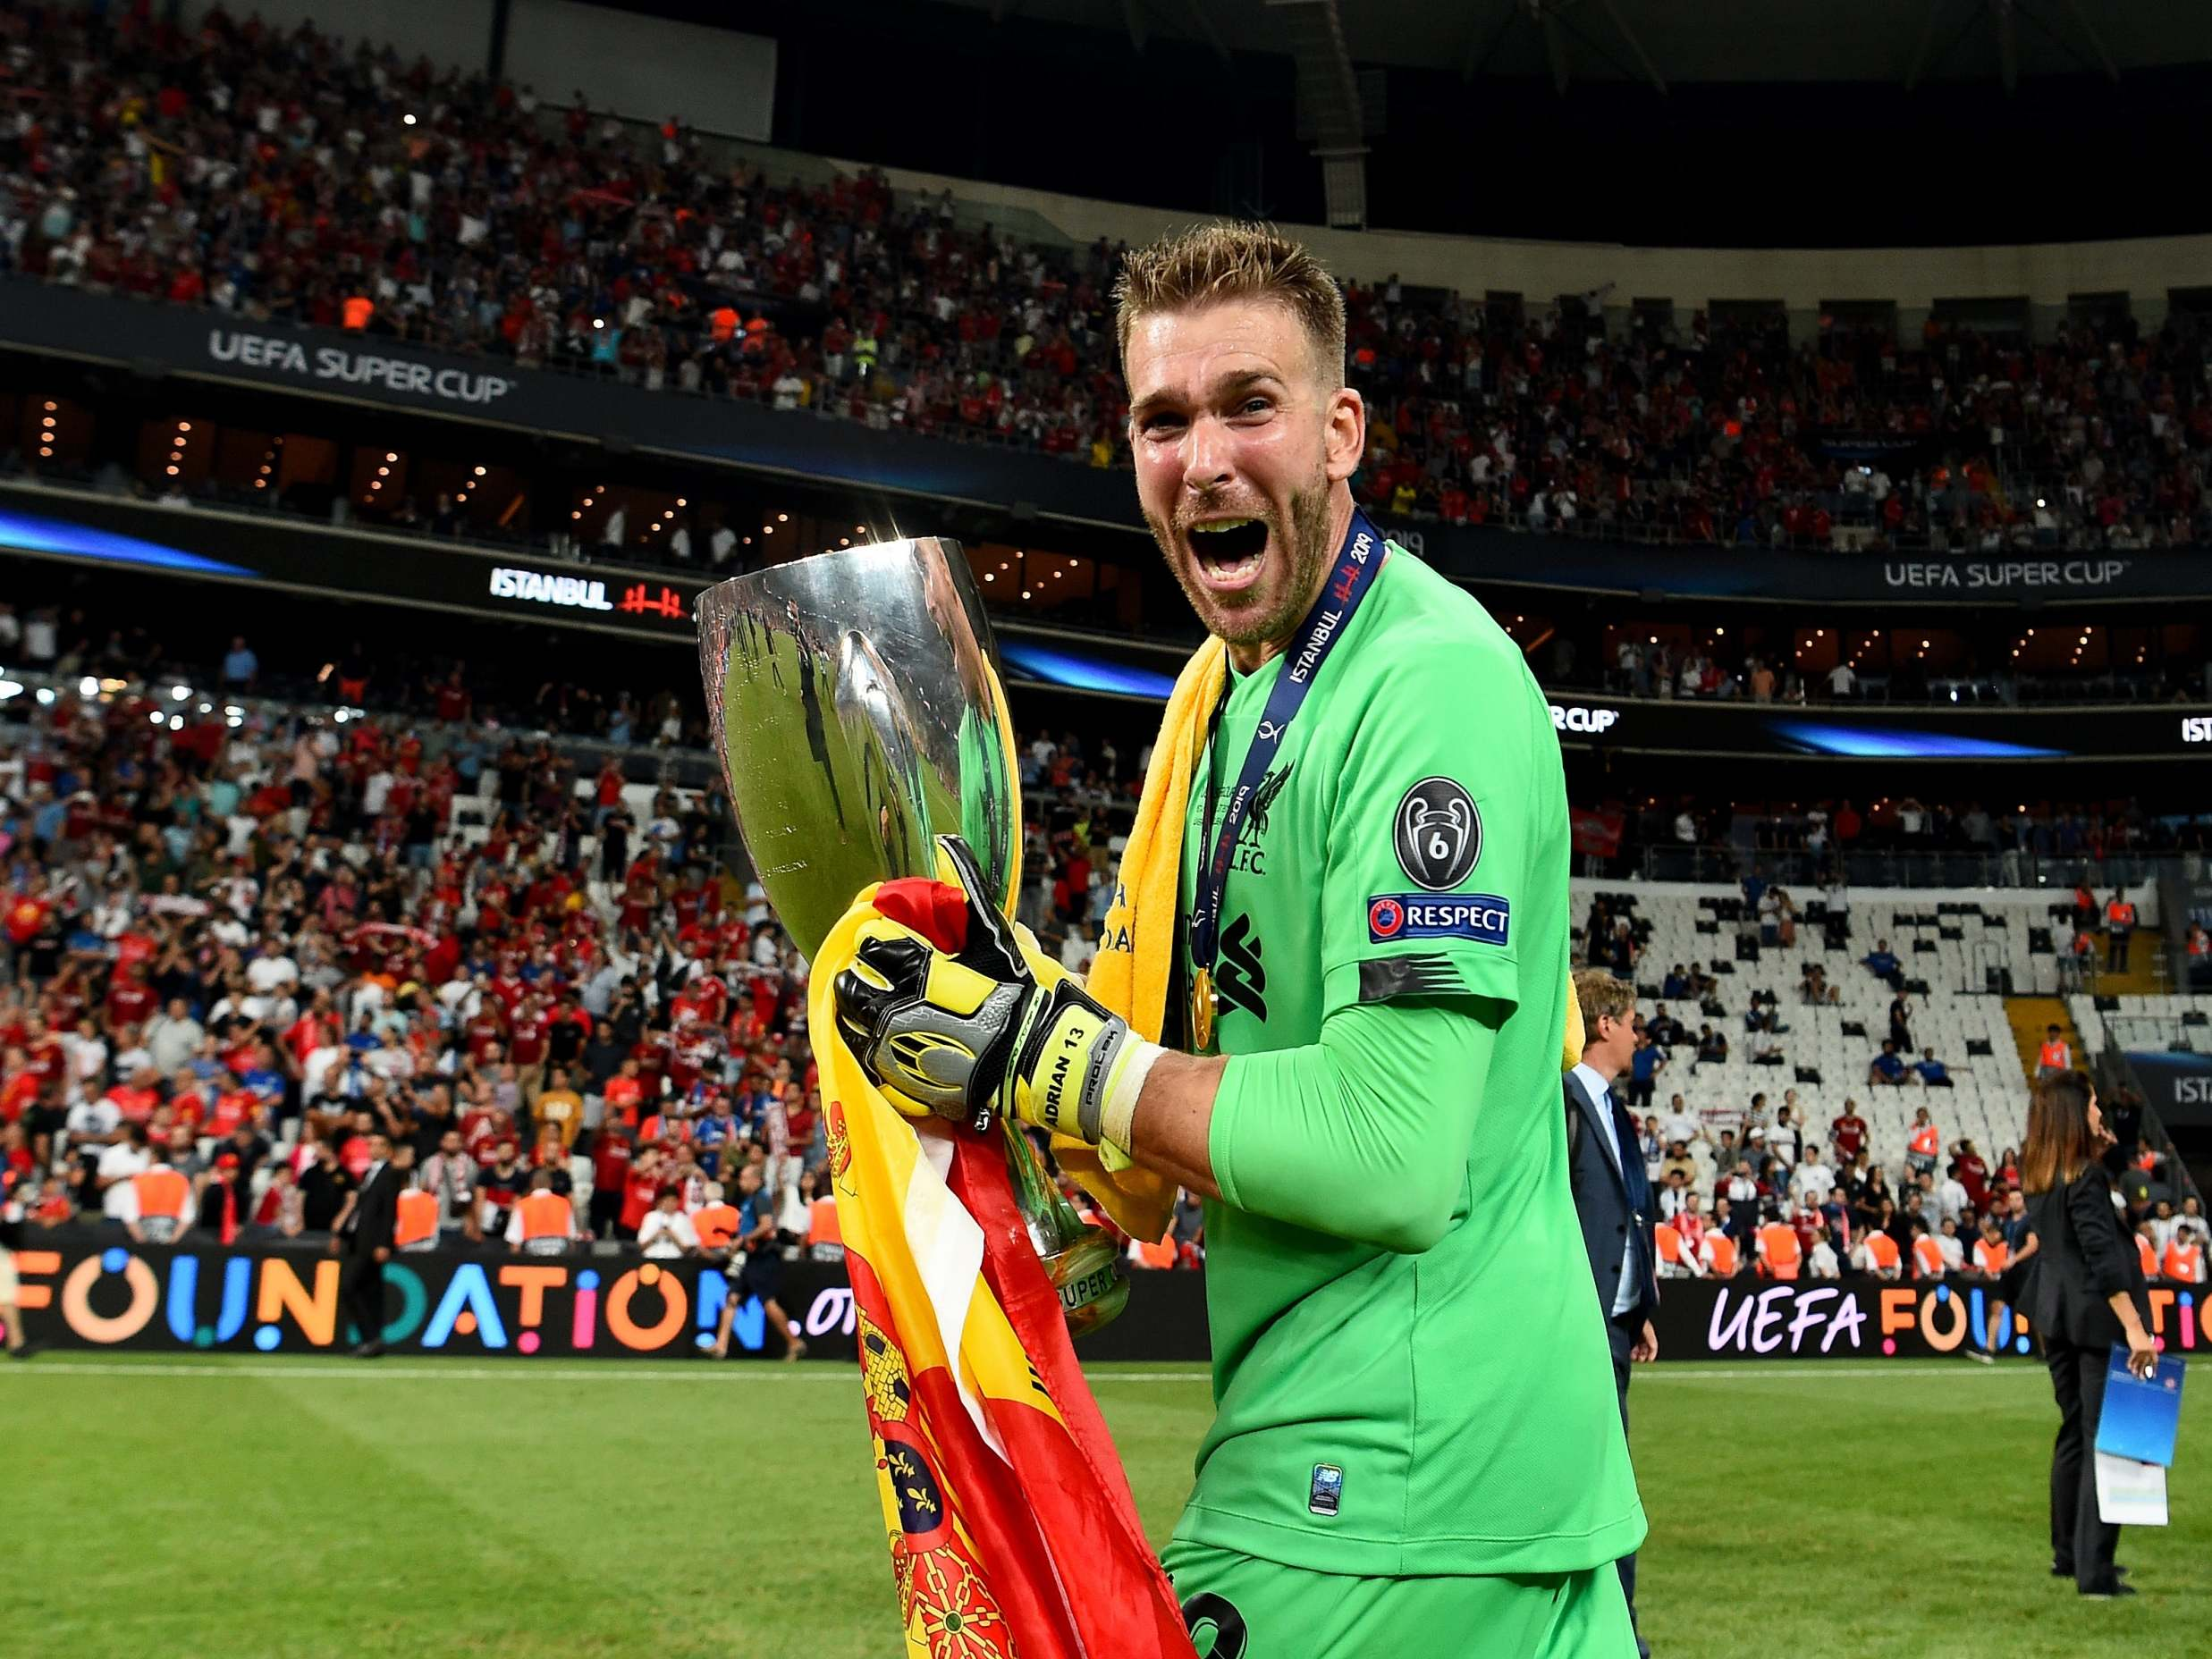 Liverpool news: Manuel Pellegrini admits he wanted Super Cup hero Adrian to remain at West Ham